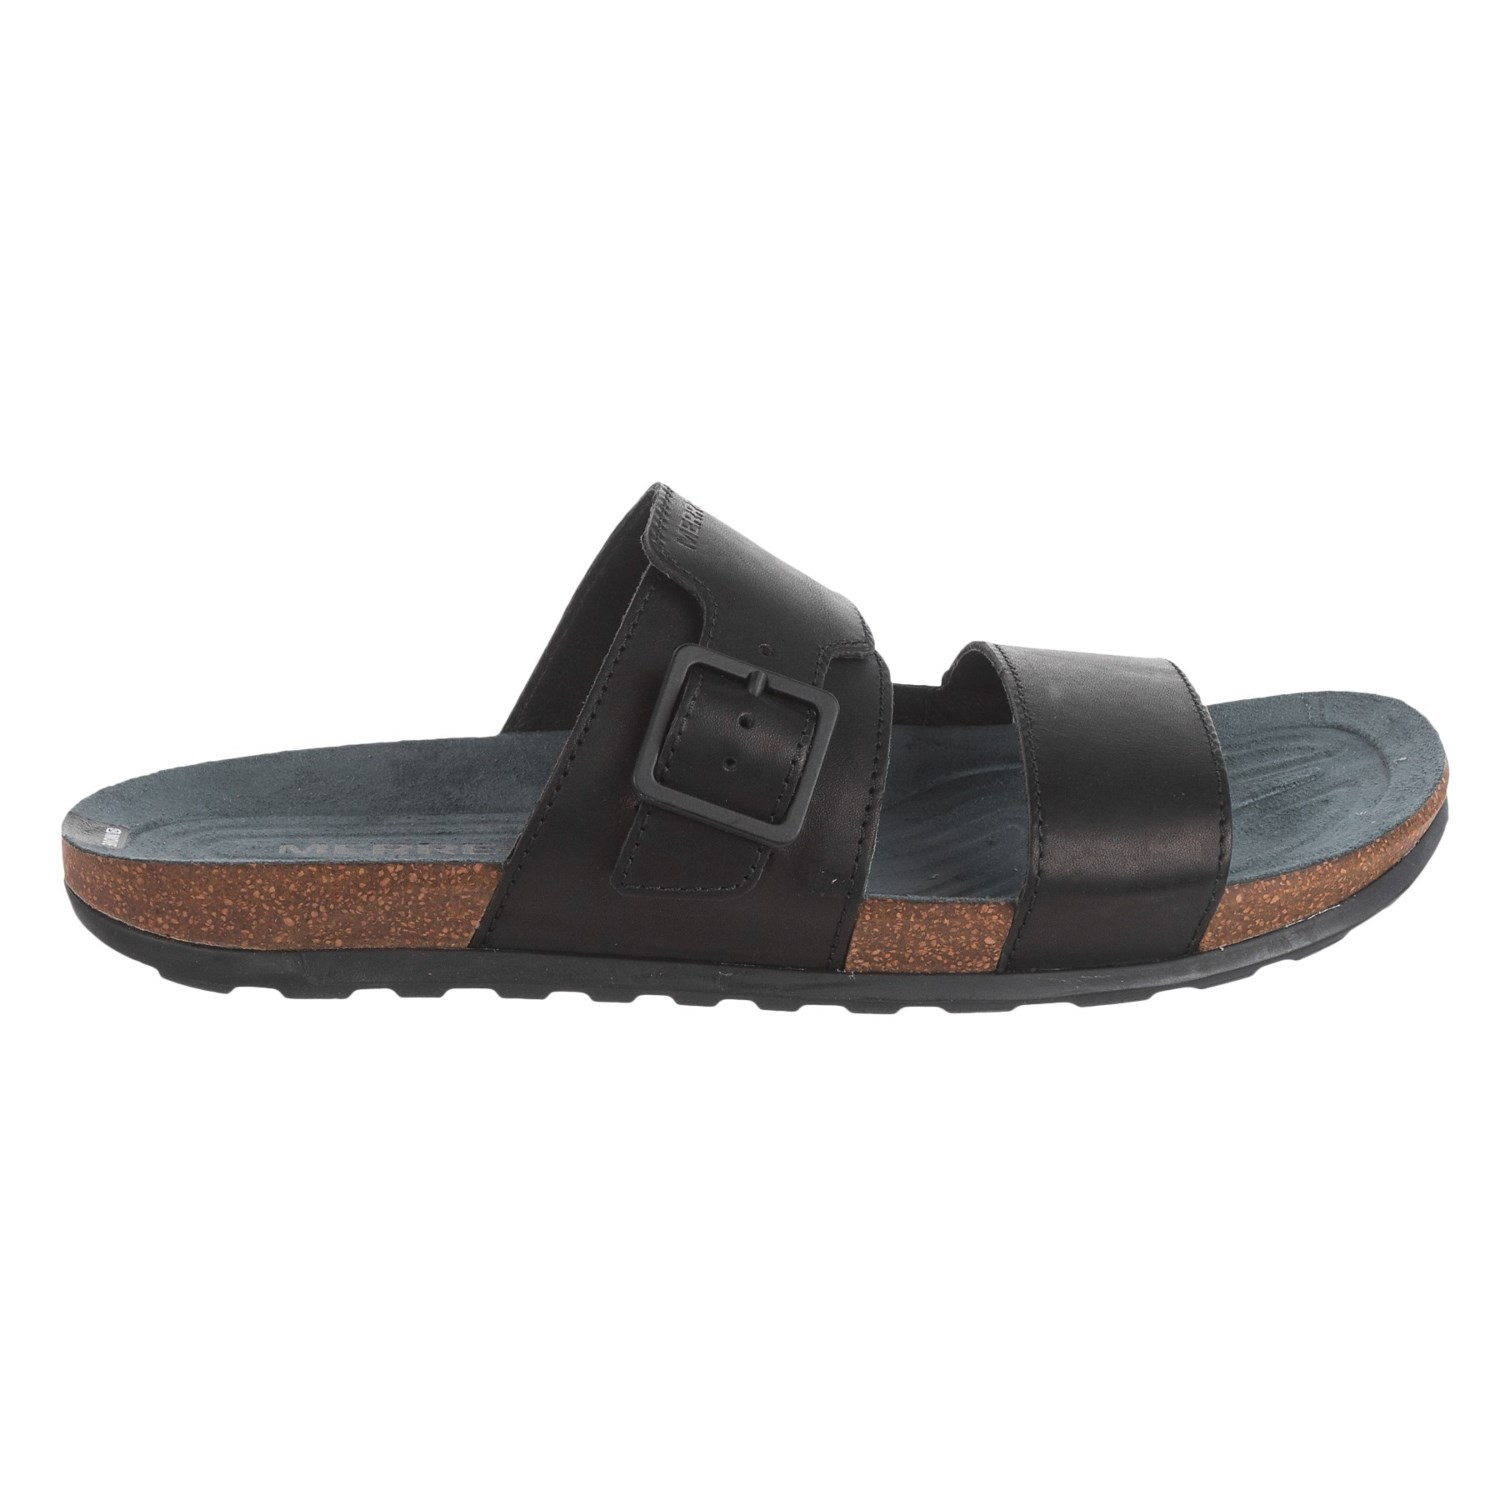 Men's Downtown Slide Buckle Sandal